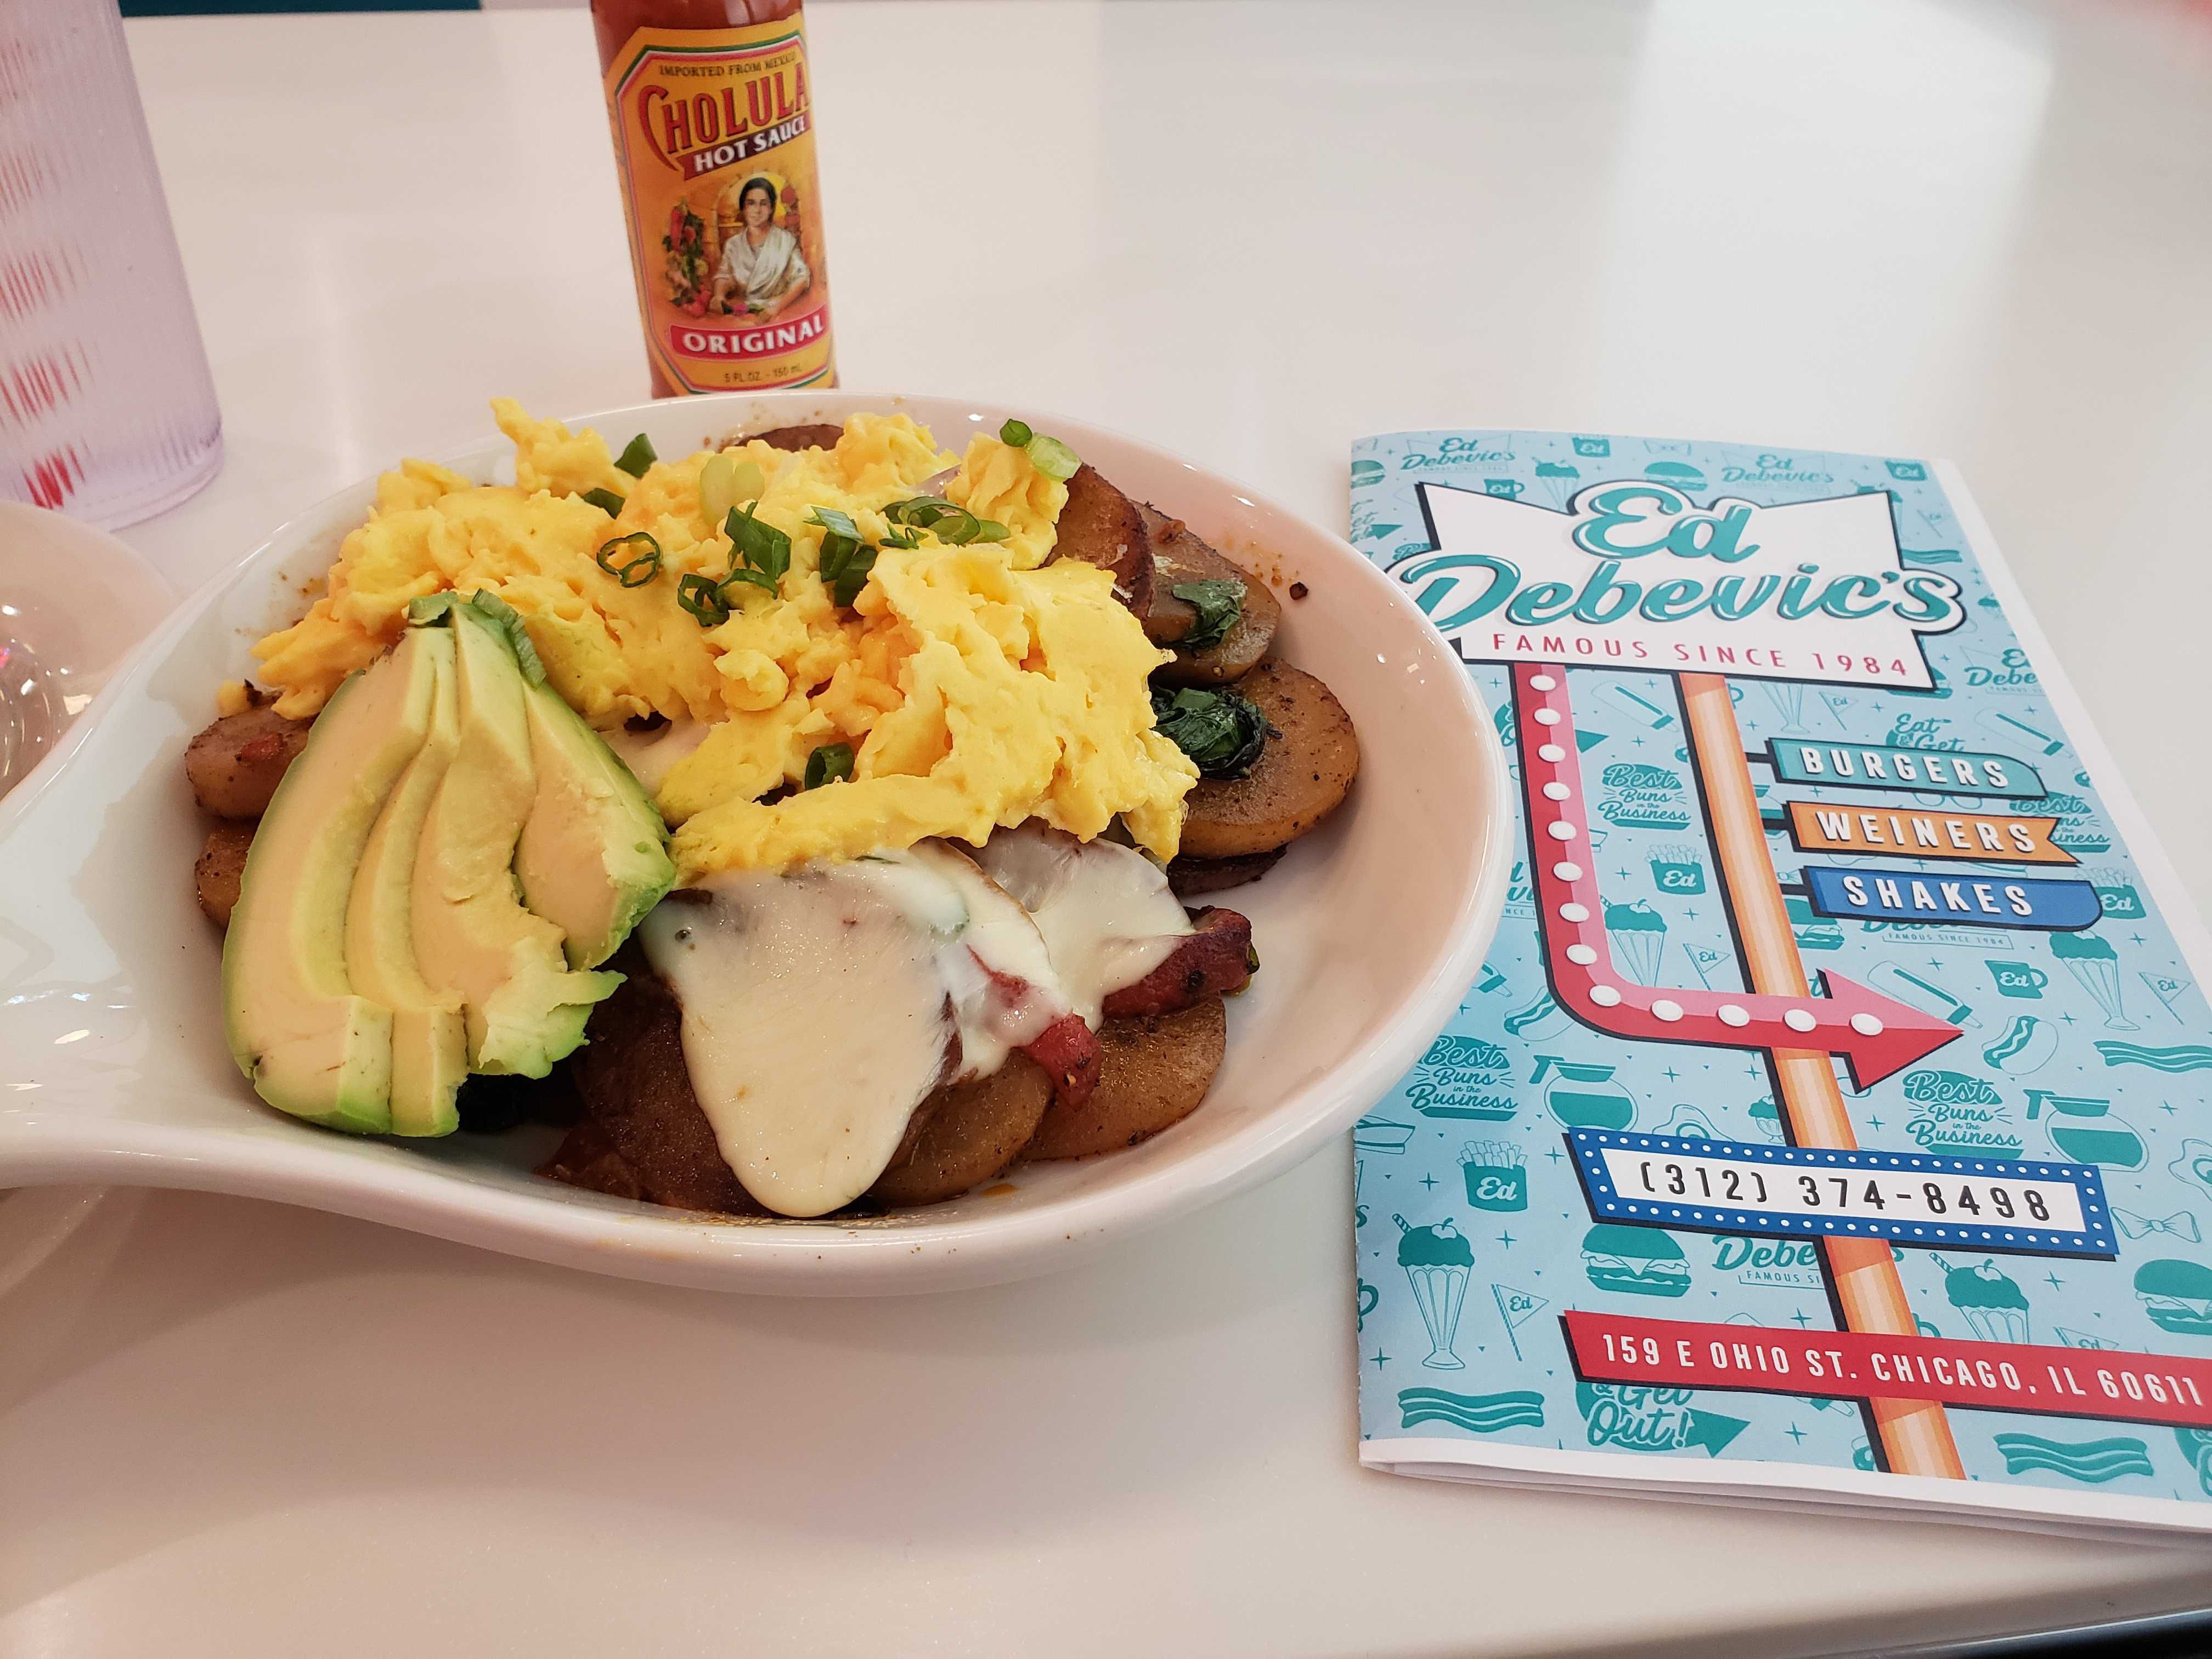 Eggs and avocados on a table at Ed Debevics.